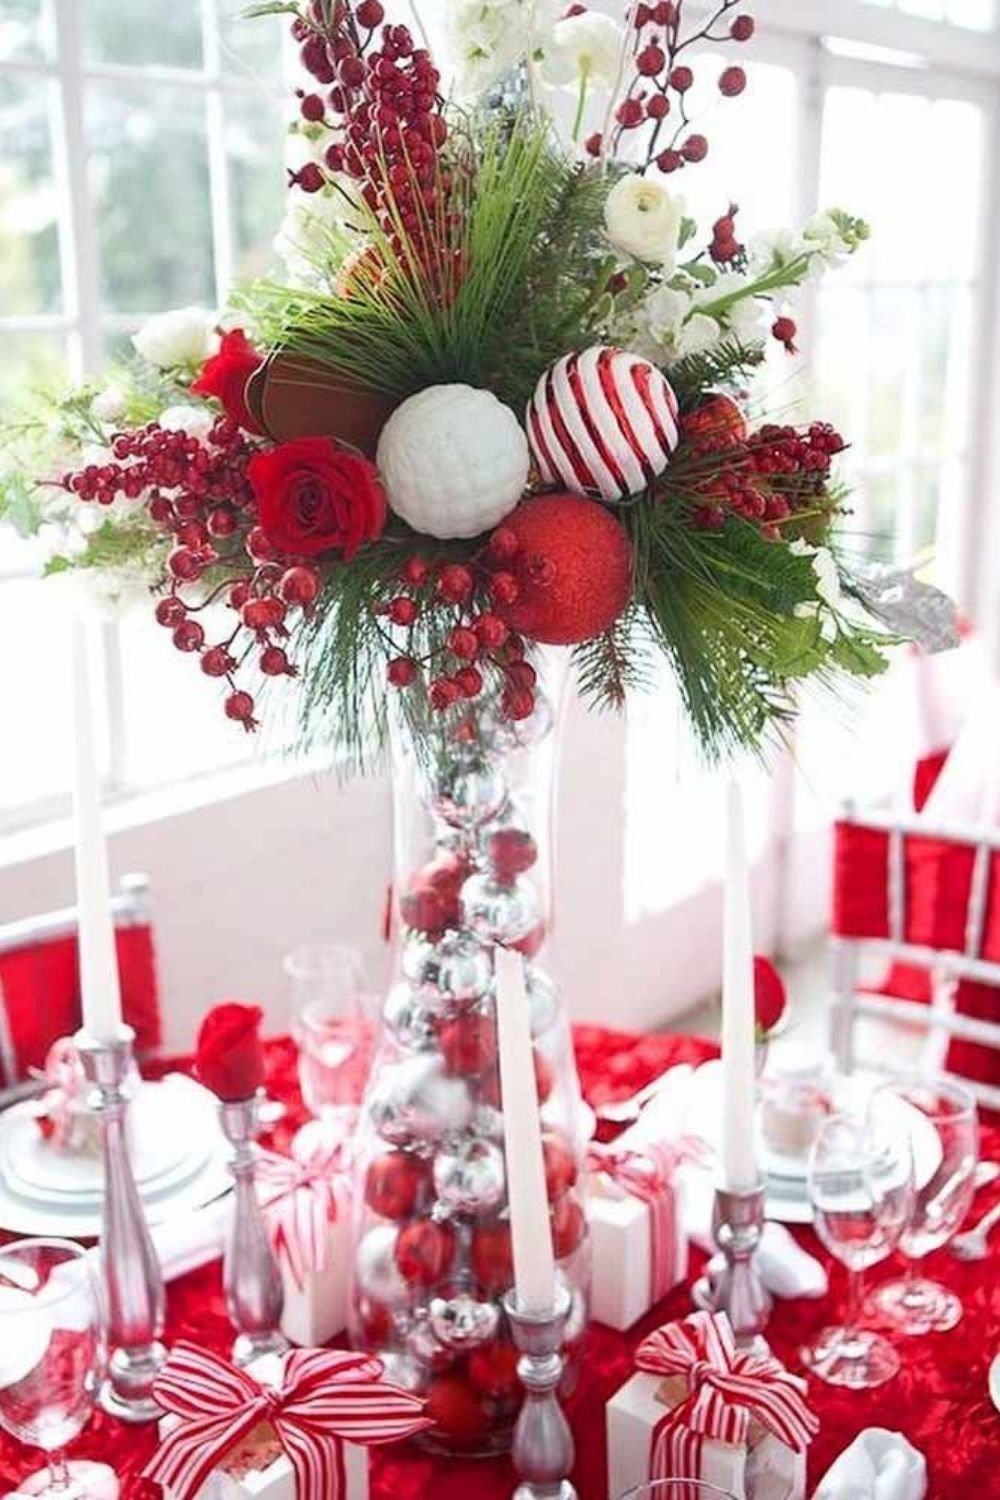 39 Creative Holiday centerpiece ideas and decorations 2021 Christmas